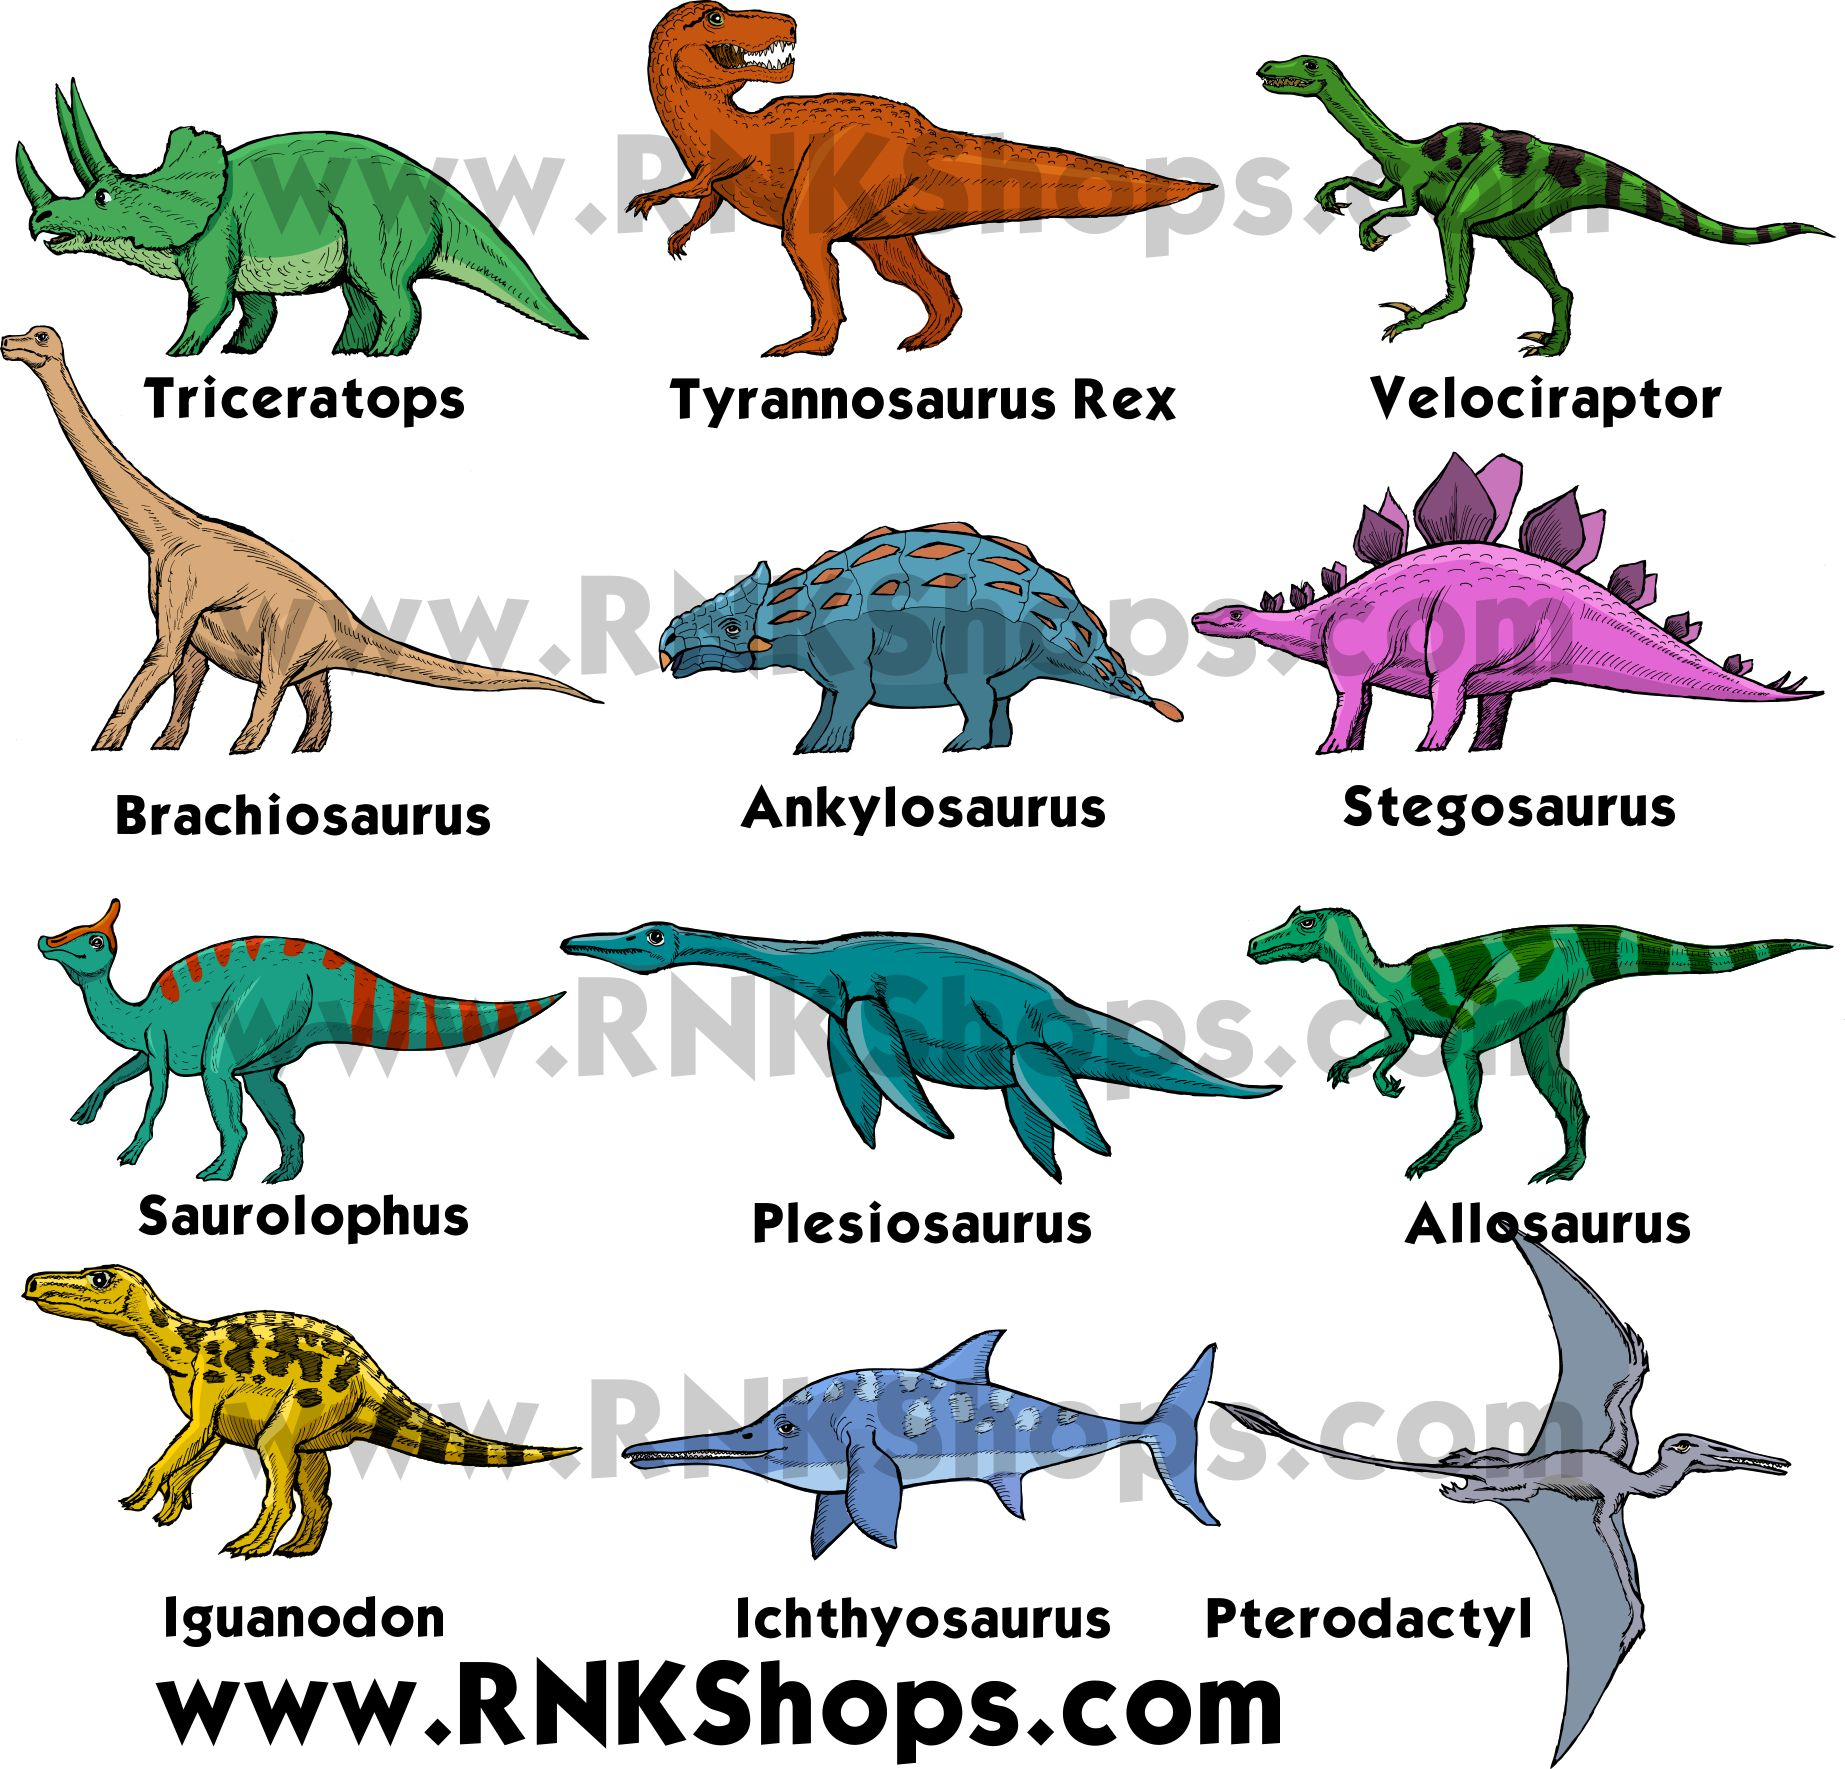 The name of the dinosaurs